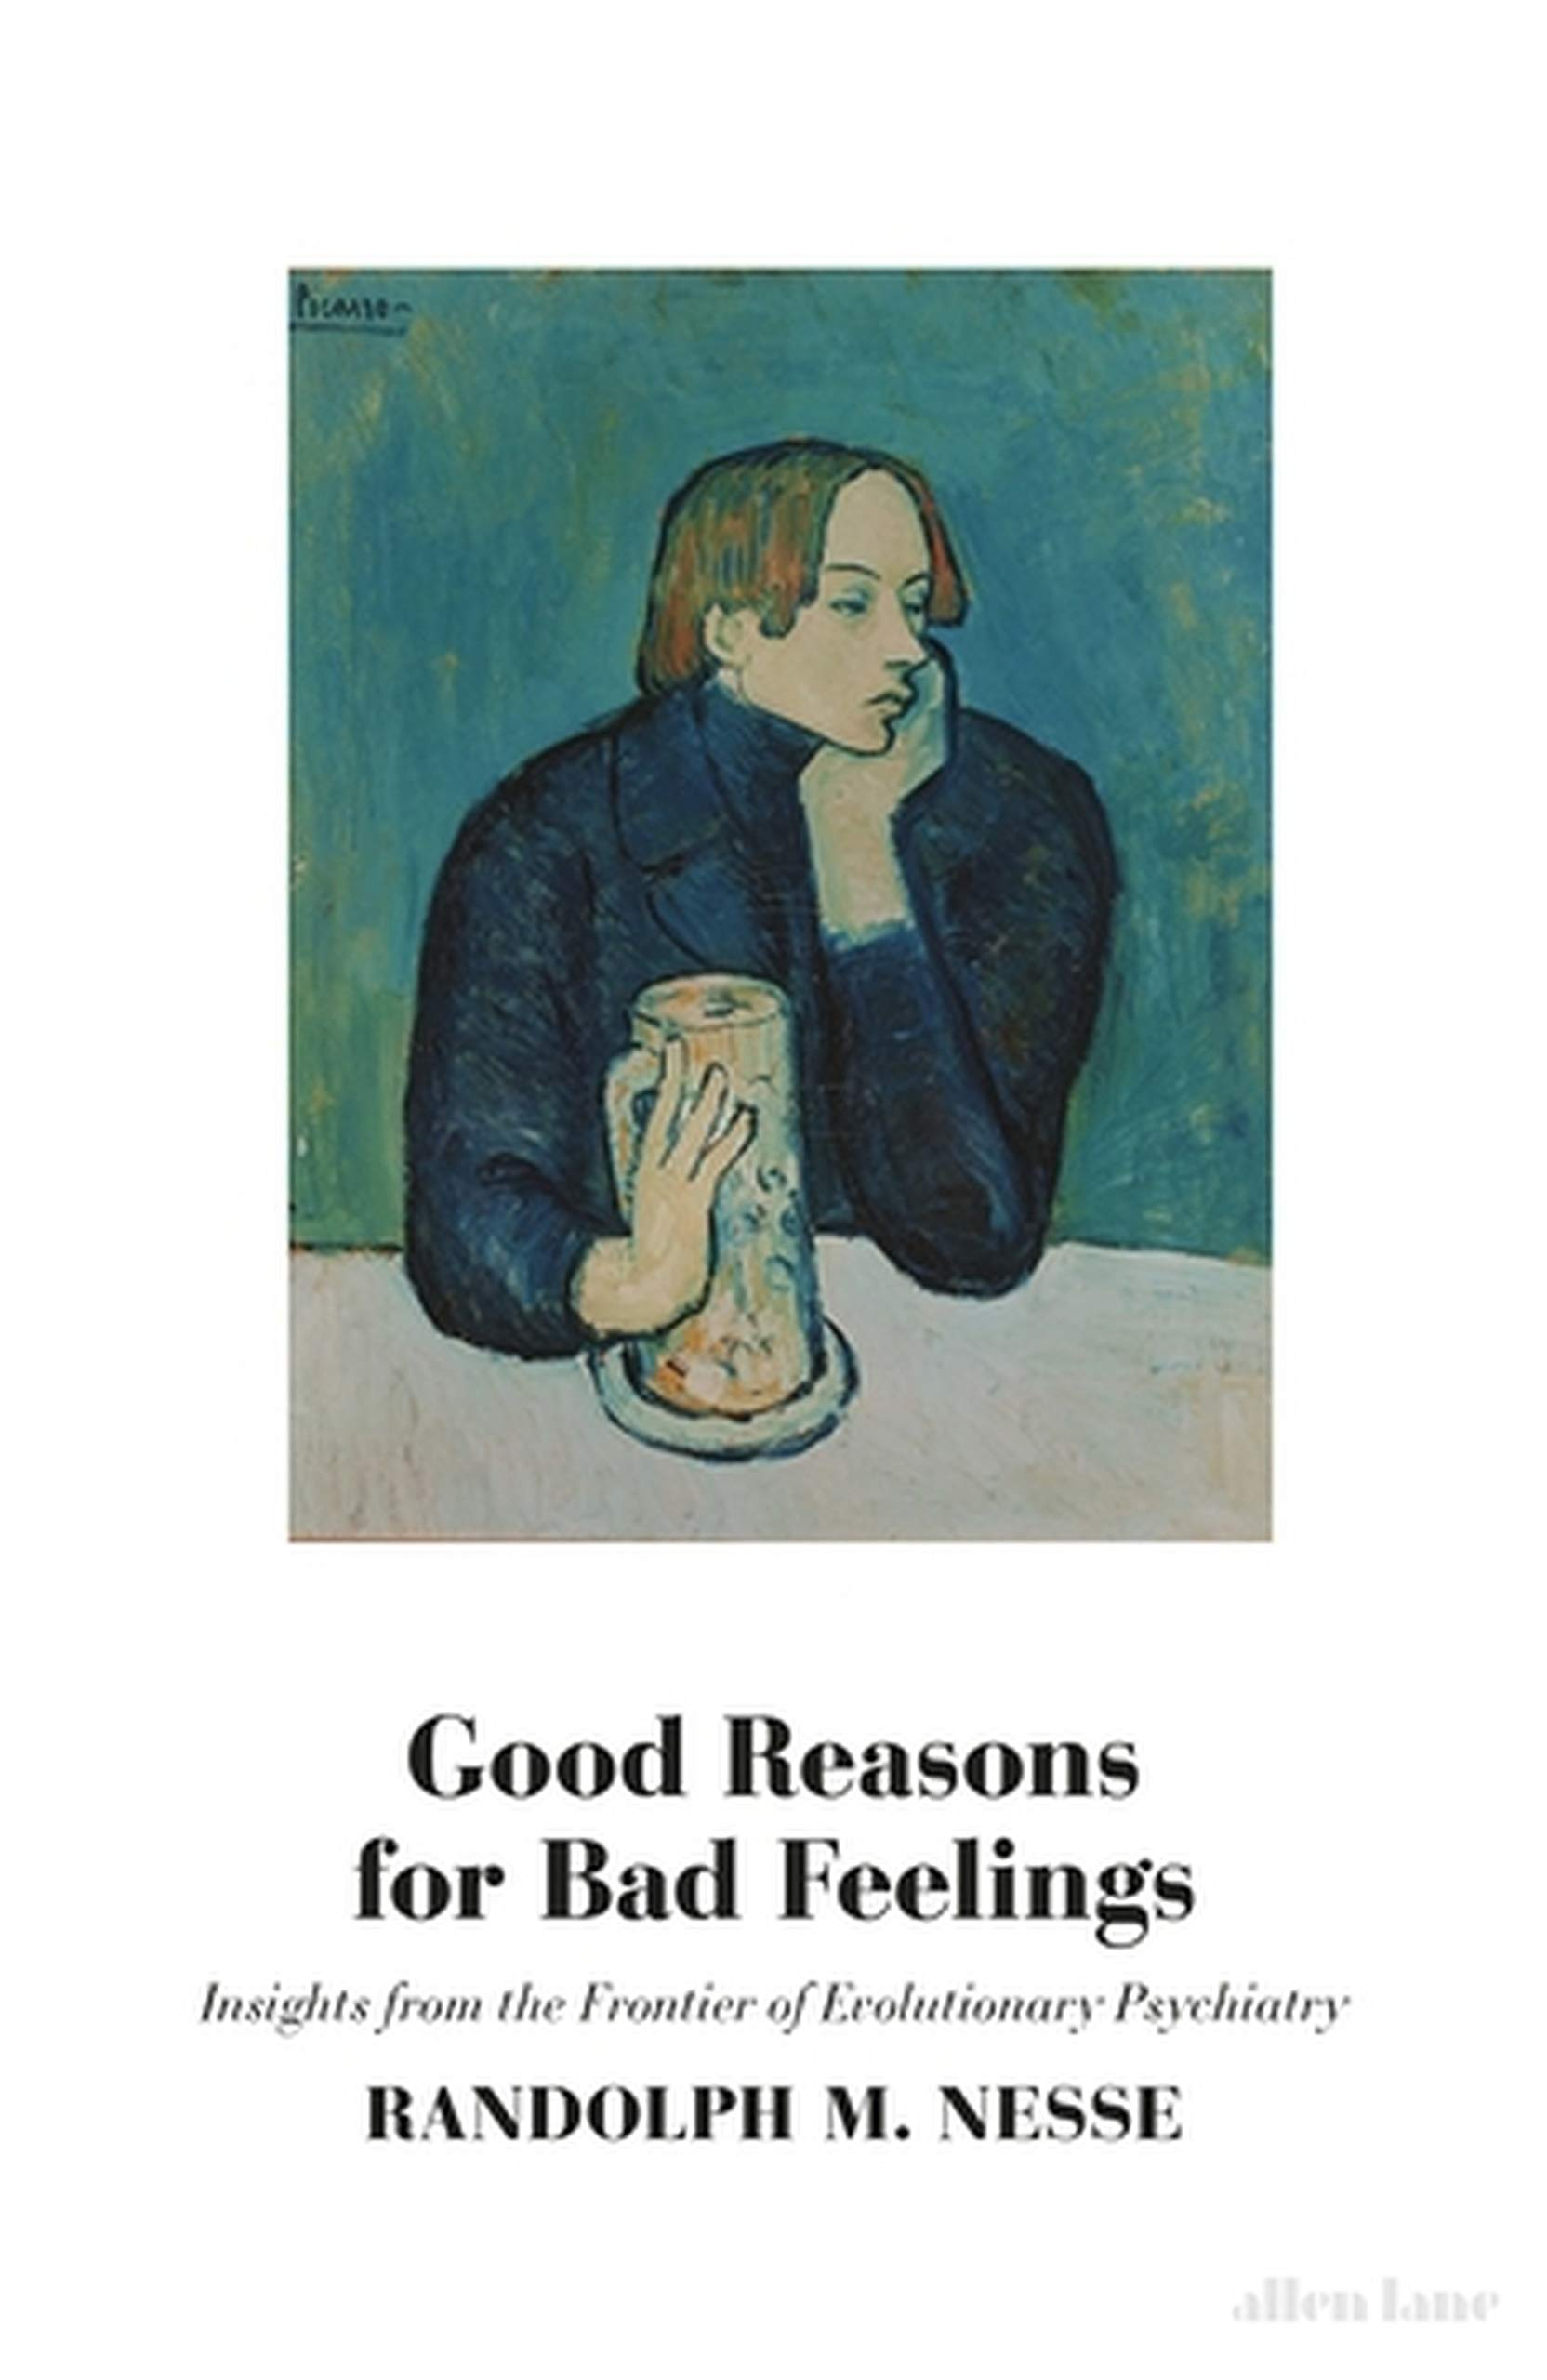 Good Reasons for Bad Feelings: Insights from the Frontier of Evolutionary Psychiatry: Amazon.es: Randolph M. Nesse: Libros en idiomas extranjeros